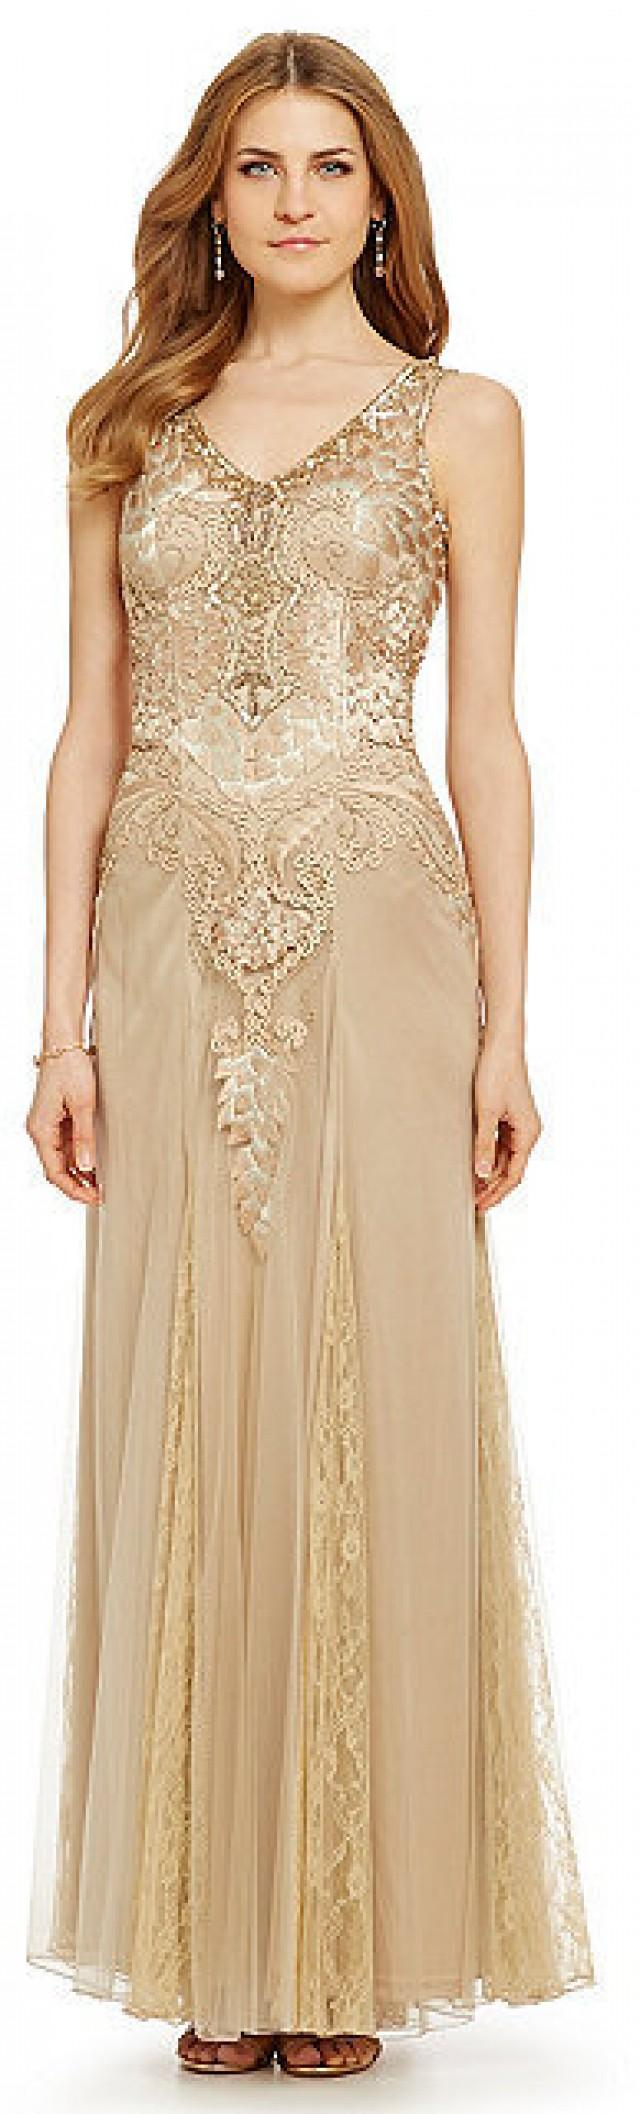 Sue Wong Embroidered Beaded Gown #2326208 - Weddbook